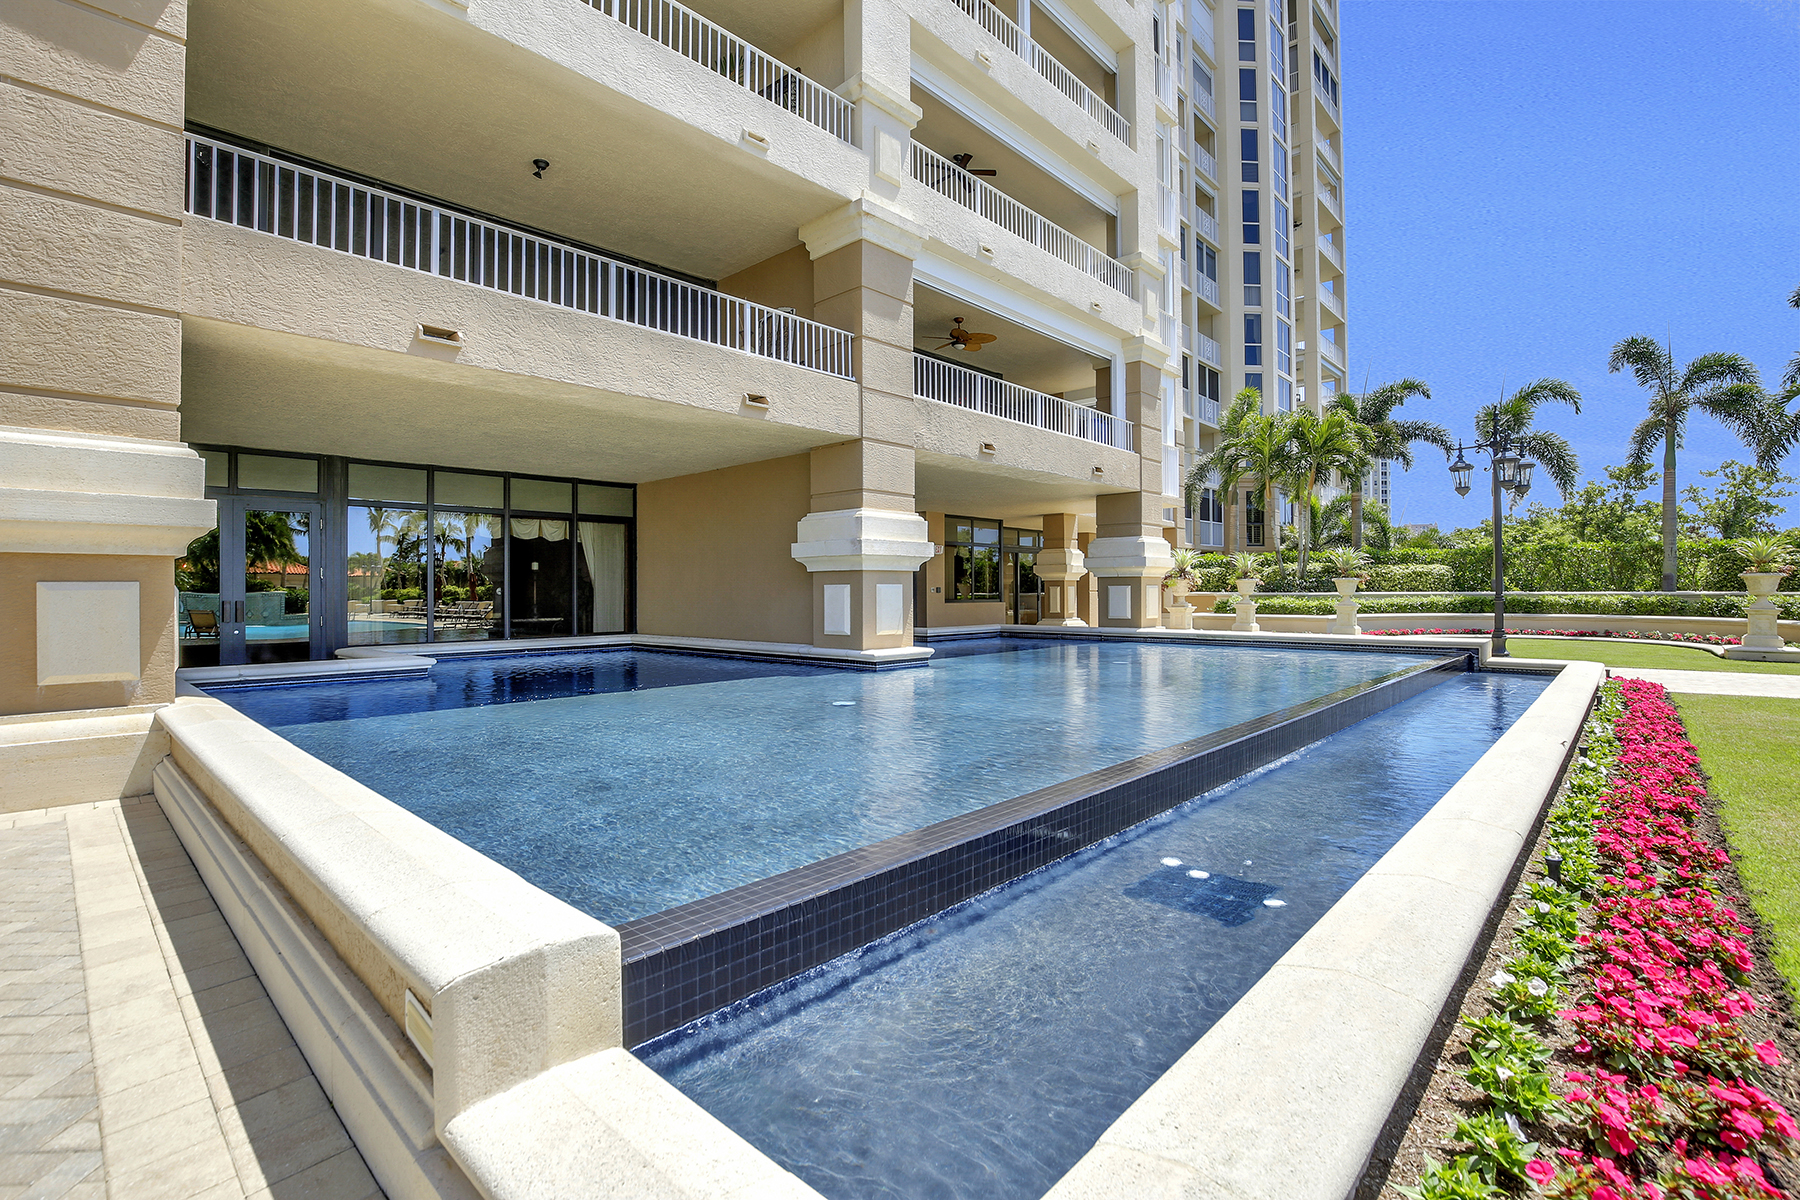 Condominium for Sale at PELICAN BAY - CAP FERRAT 6597 Nicholas Blvd 305, Naples, Florida 34108 United States